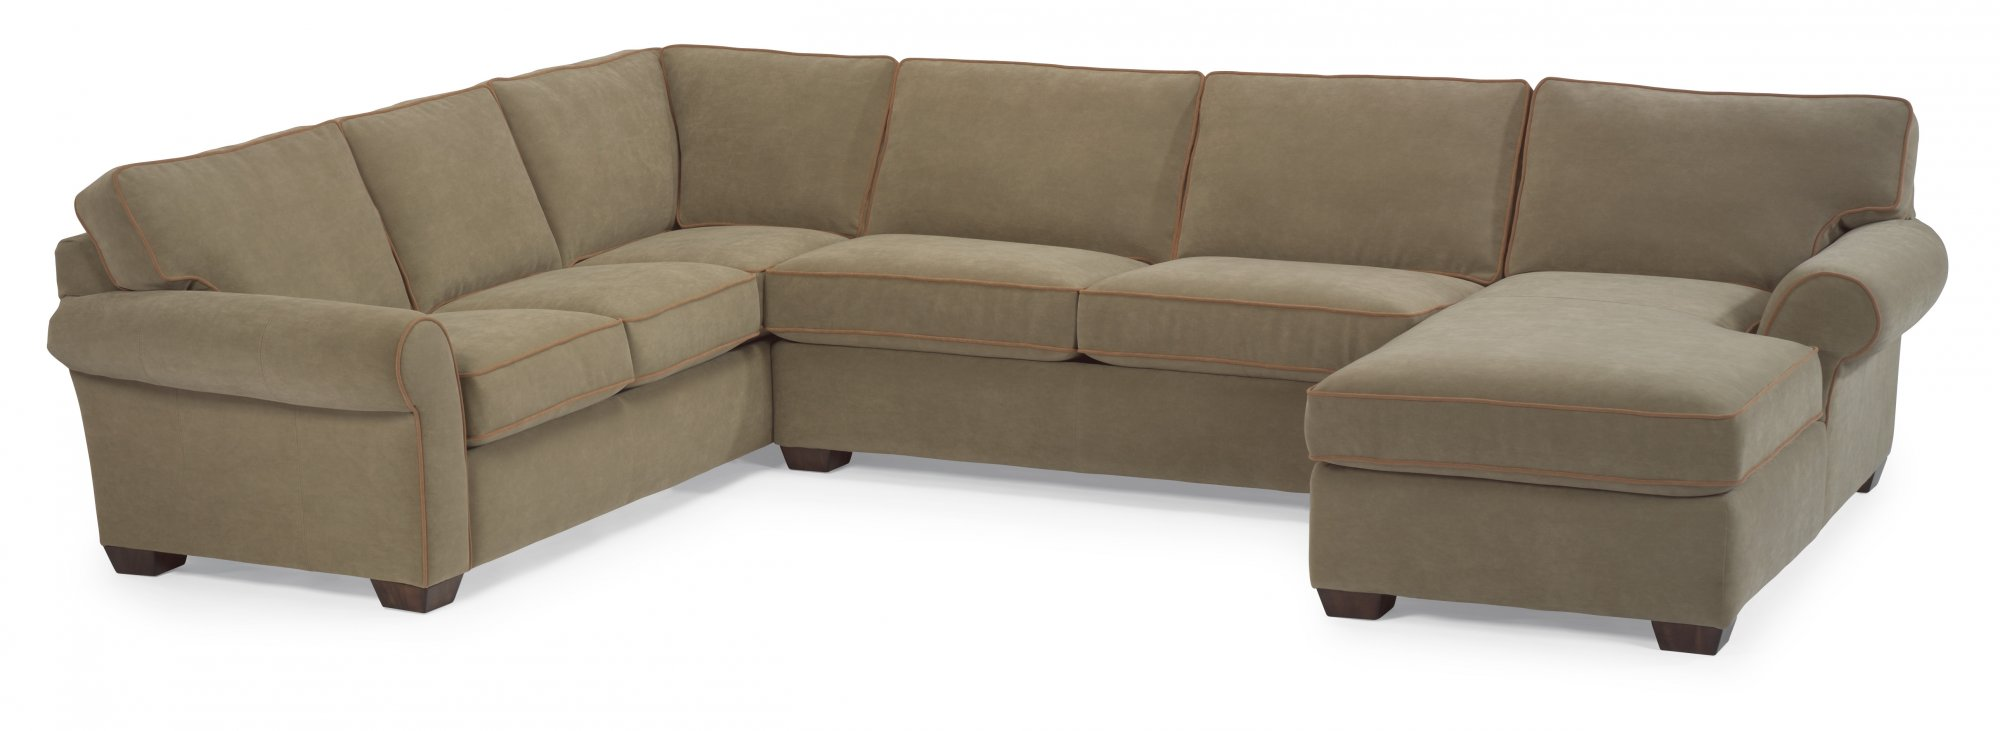 Flexsteel Vail  Leather Sectional